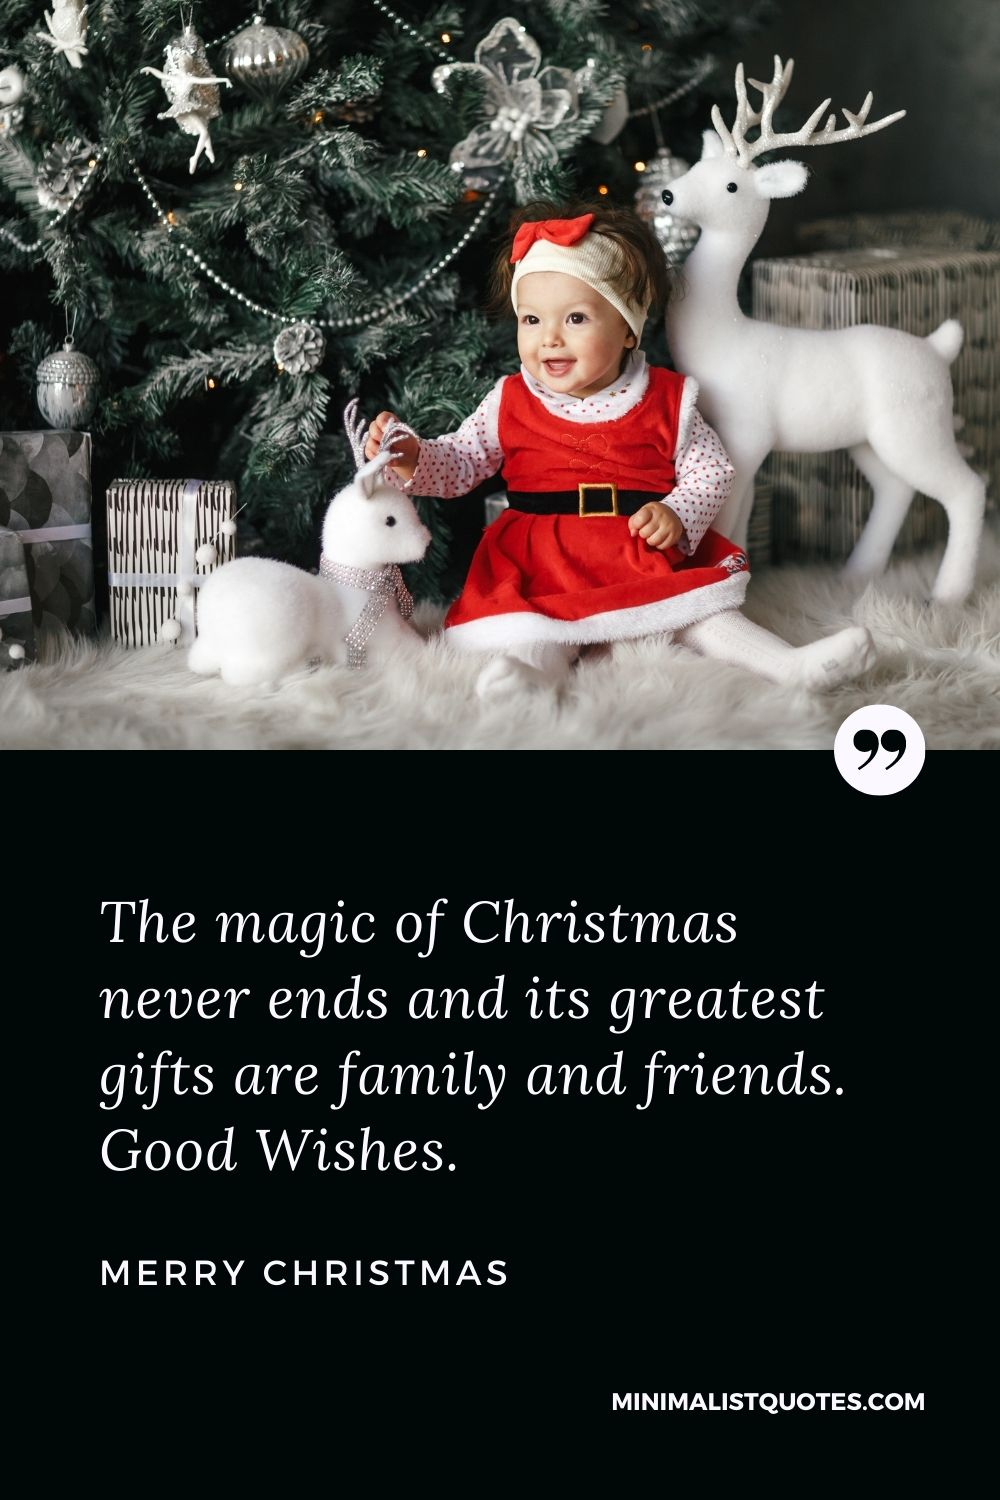 Merry Christmas Wish - The magic of Christmas never ends and its greatest gifts are family and friends. Good Wishes.